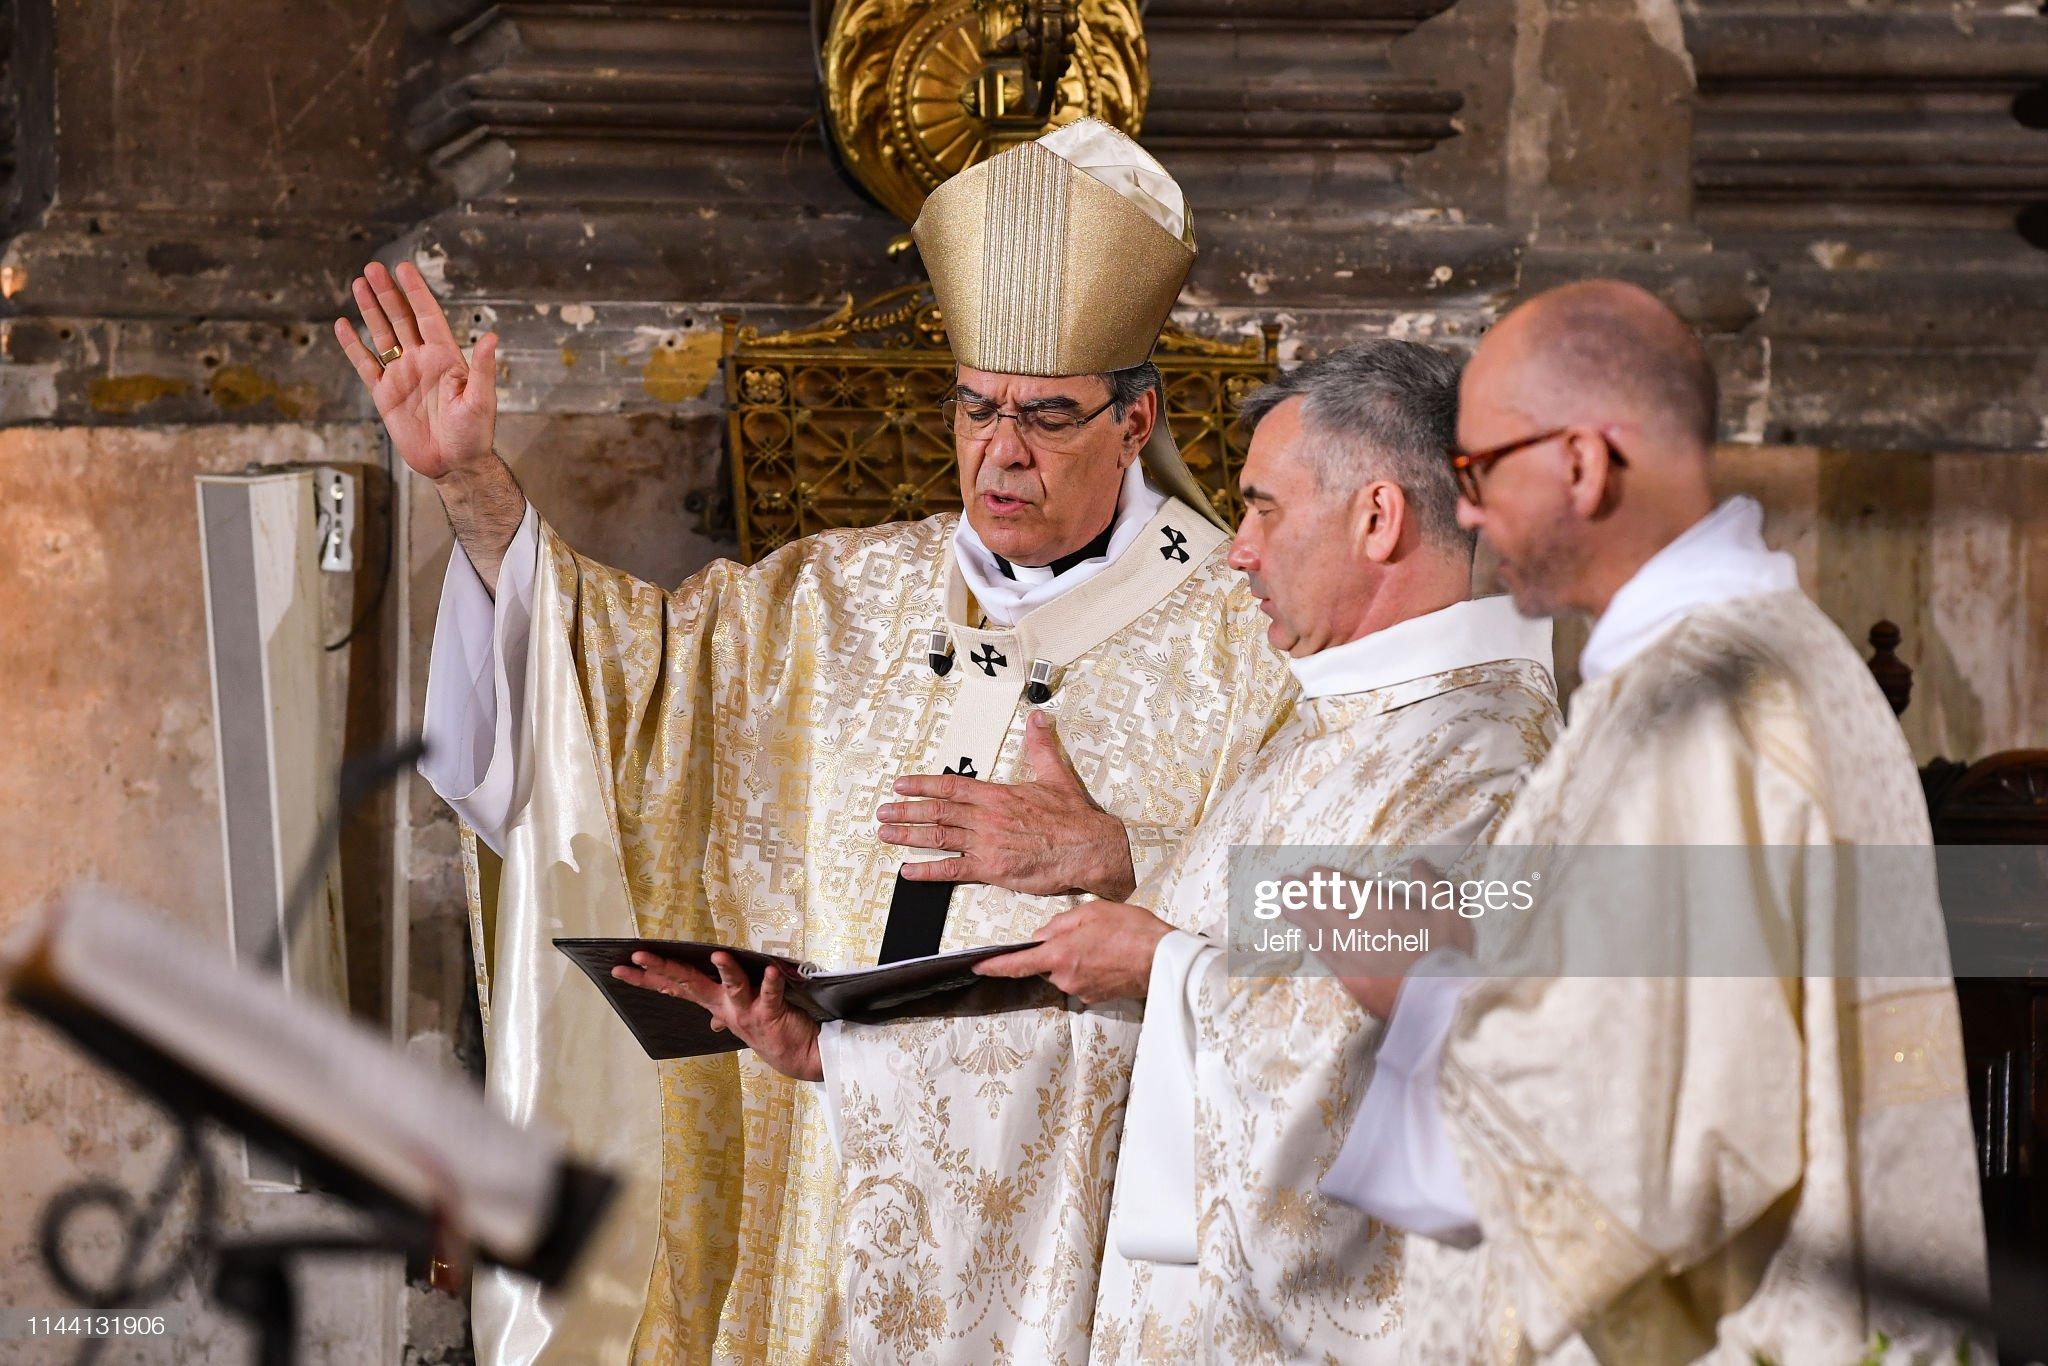 https://media.gettyimages.com/photos/archbishop-michel-aupetit-leads-notre-dame-easter-mass-at-the-church-picture-id1144131906?s=2048x2048